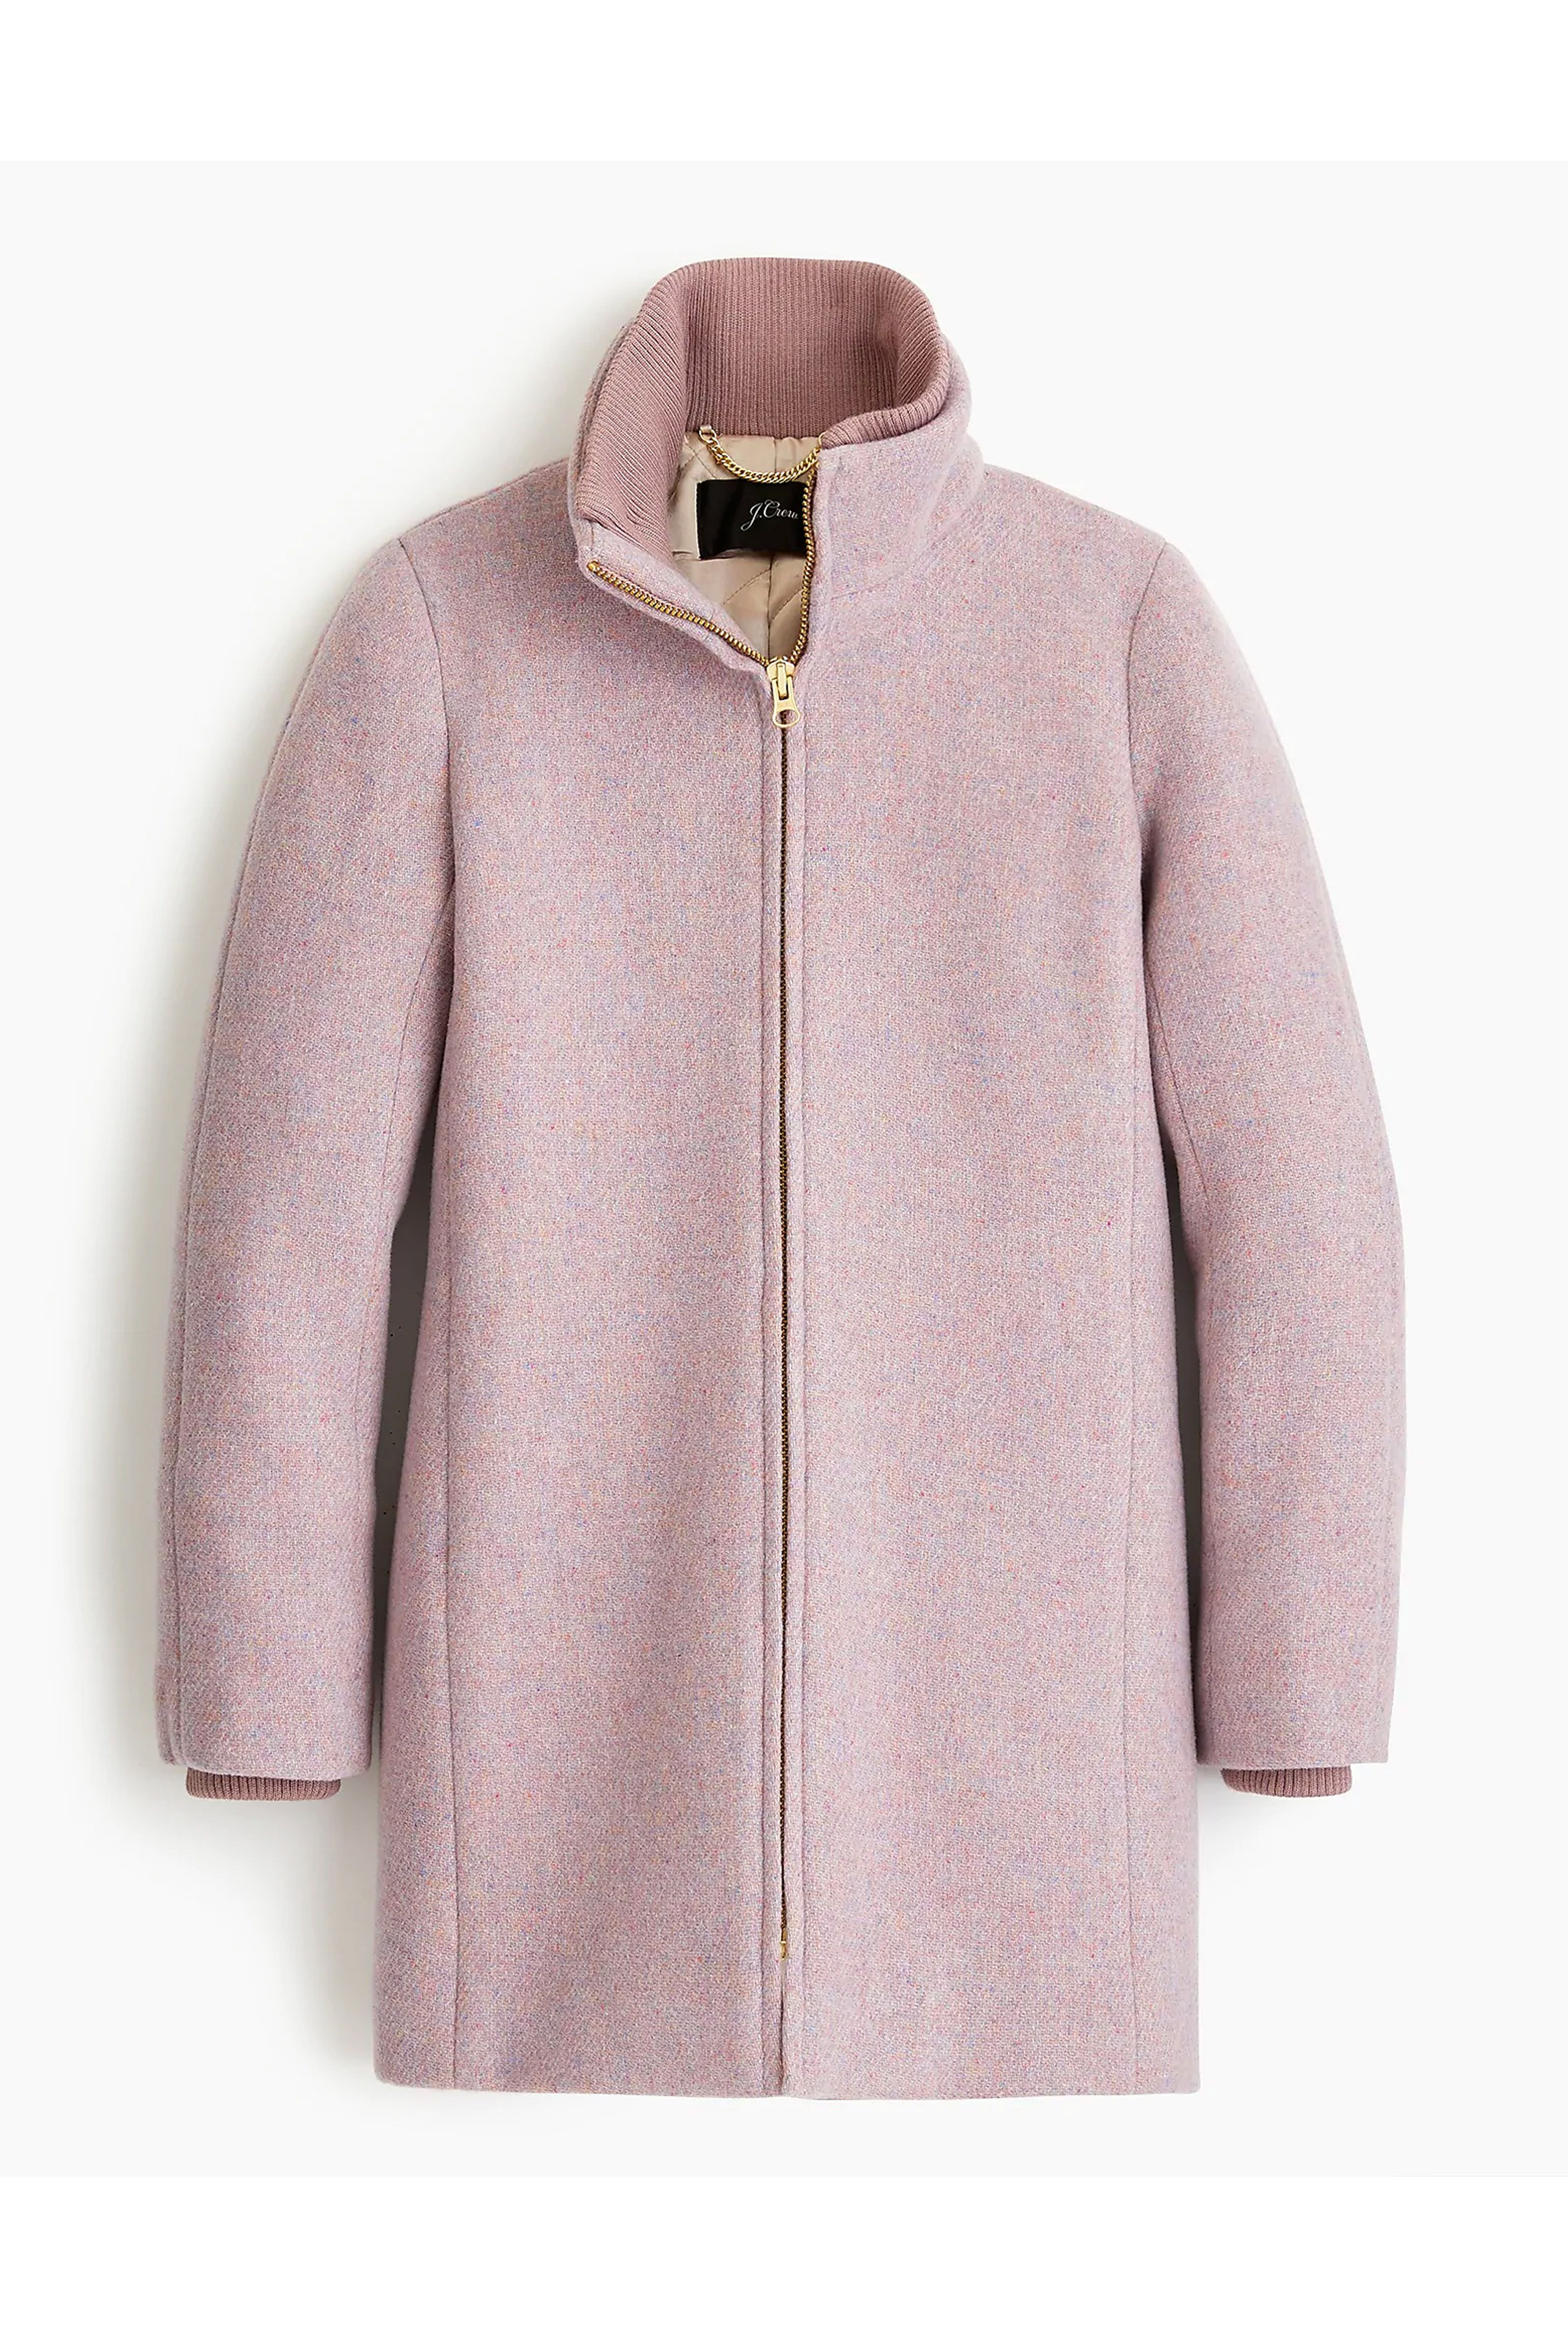 01980622f Shop J.Crew's 50 Percent Off Sale Now - What to Shop From J.Crew Holiday  Sale